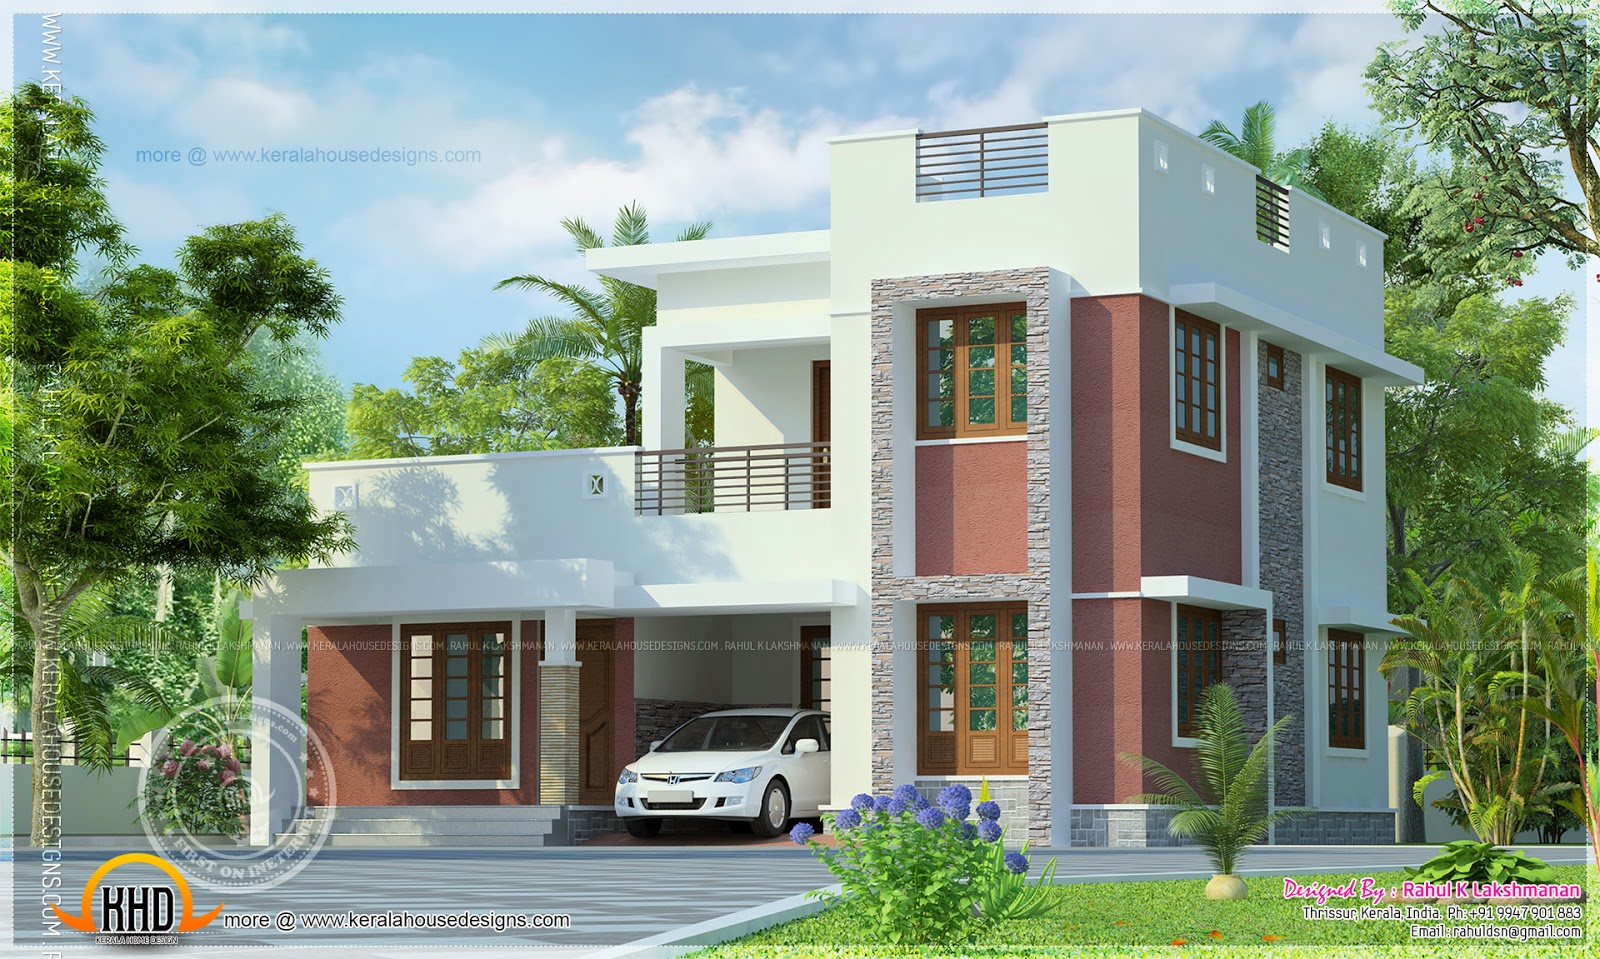 Simple flat roof house exterior kerala home design and for Easy home plans